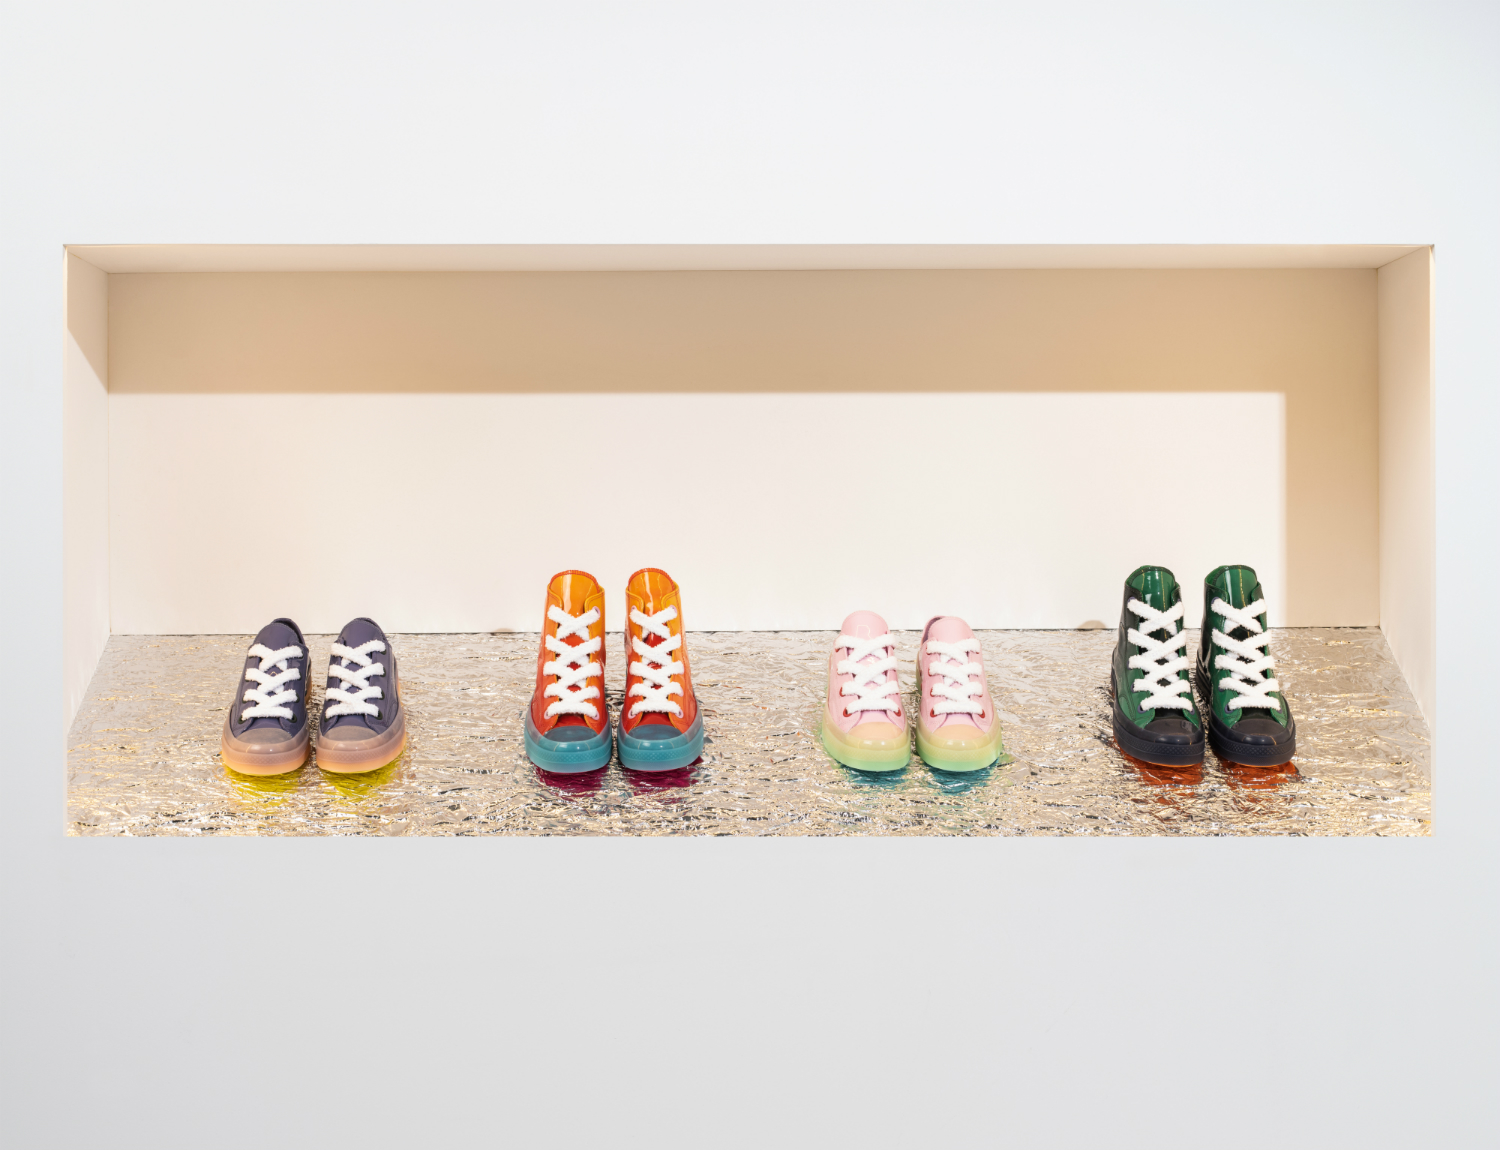 JW ANDERSON X CONVERSE CHUCK TAYLOR RON NAGLE COLLABORATION DROP ART FASHION VOO STORE LOEWE